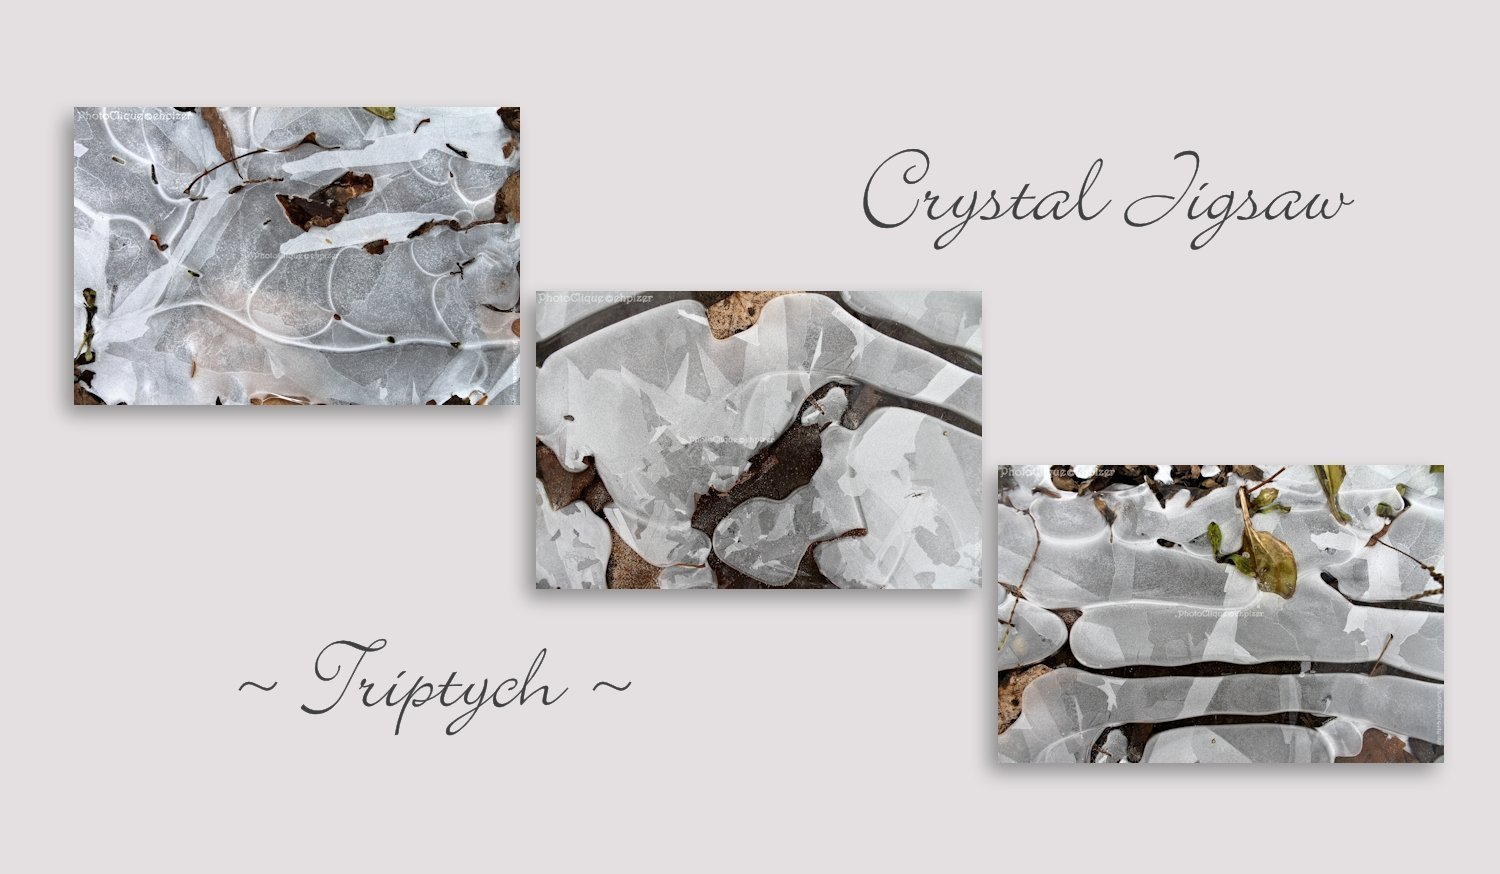 Crystal Jigsaw Triptych/ Abstract Ice Patterns/ Winter, Nature/ Set of 3 Fine Art Photography Prints